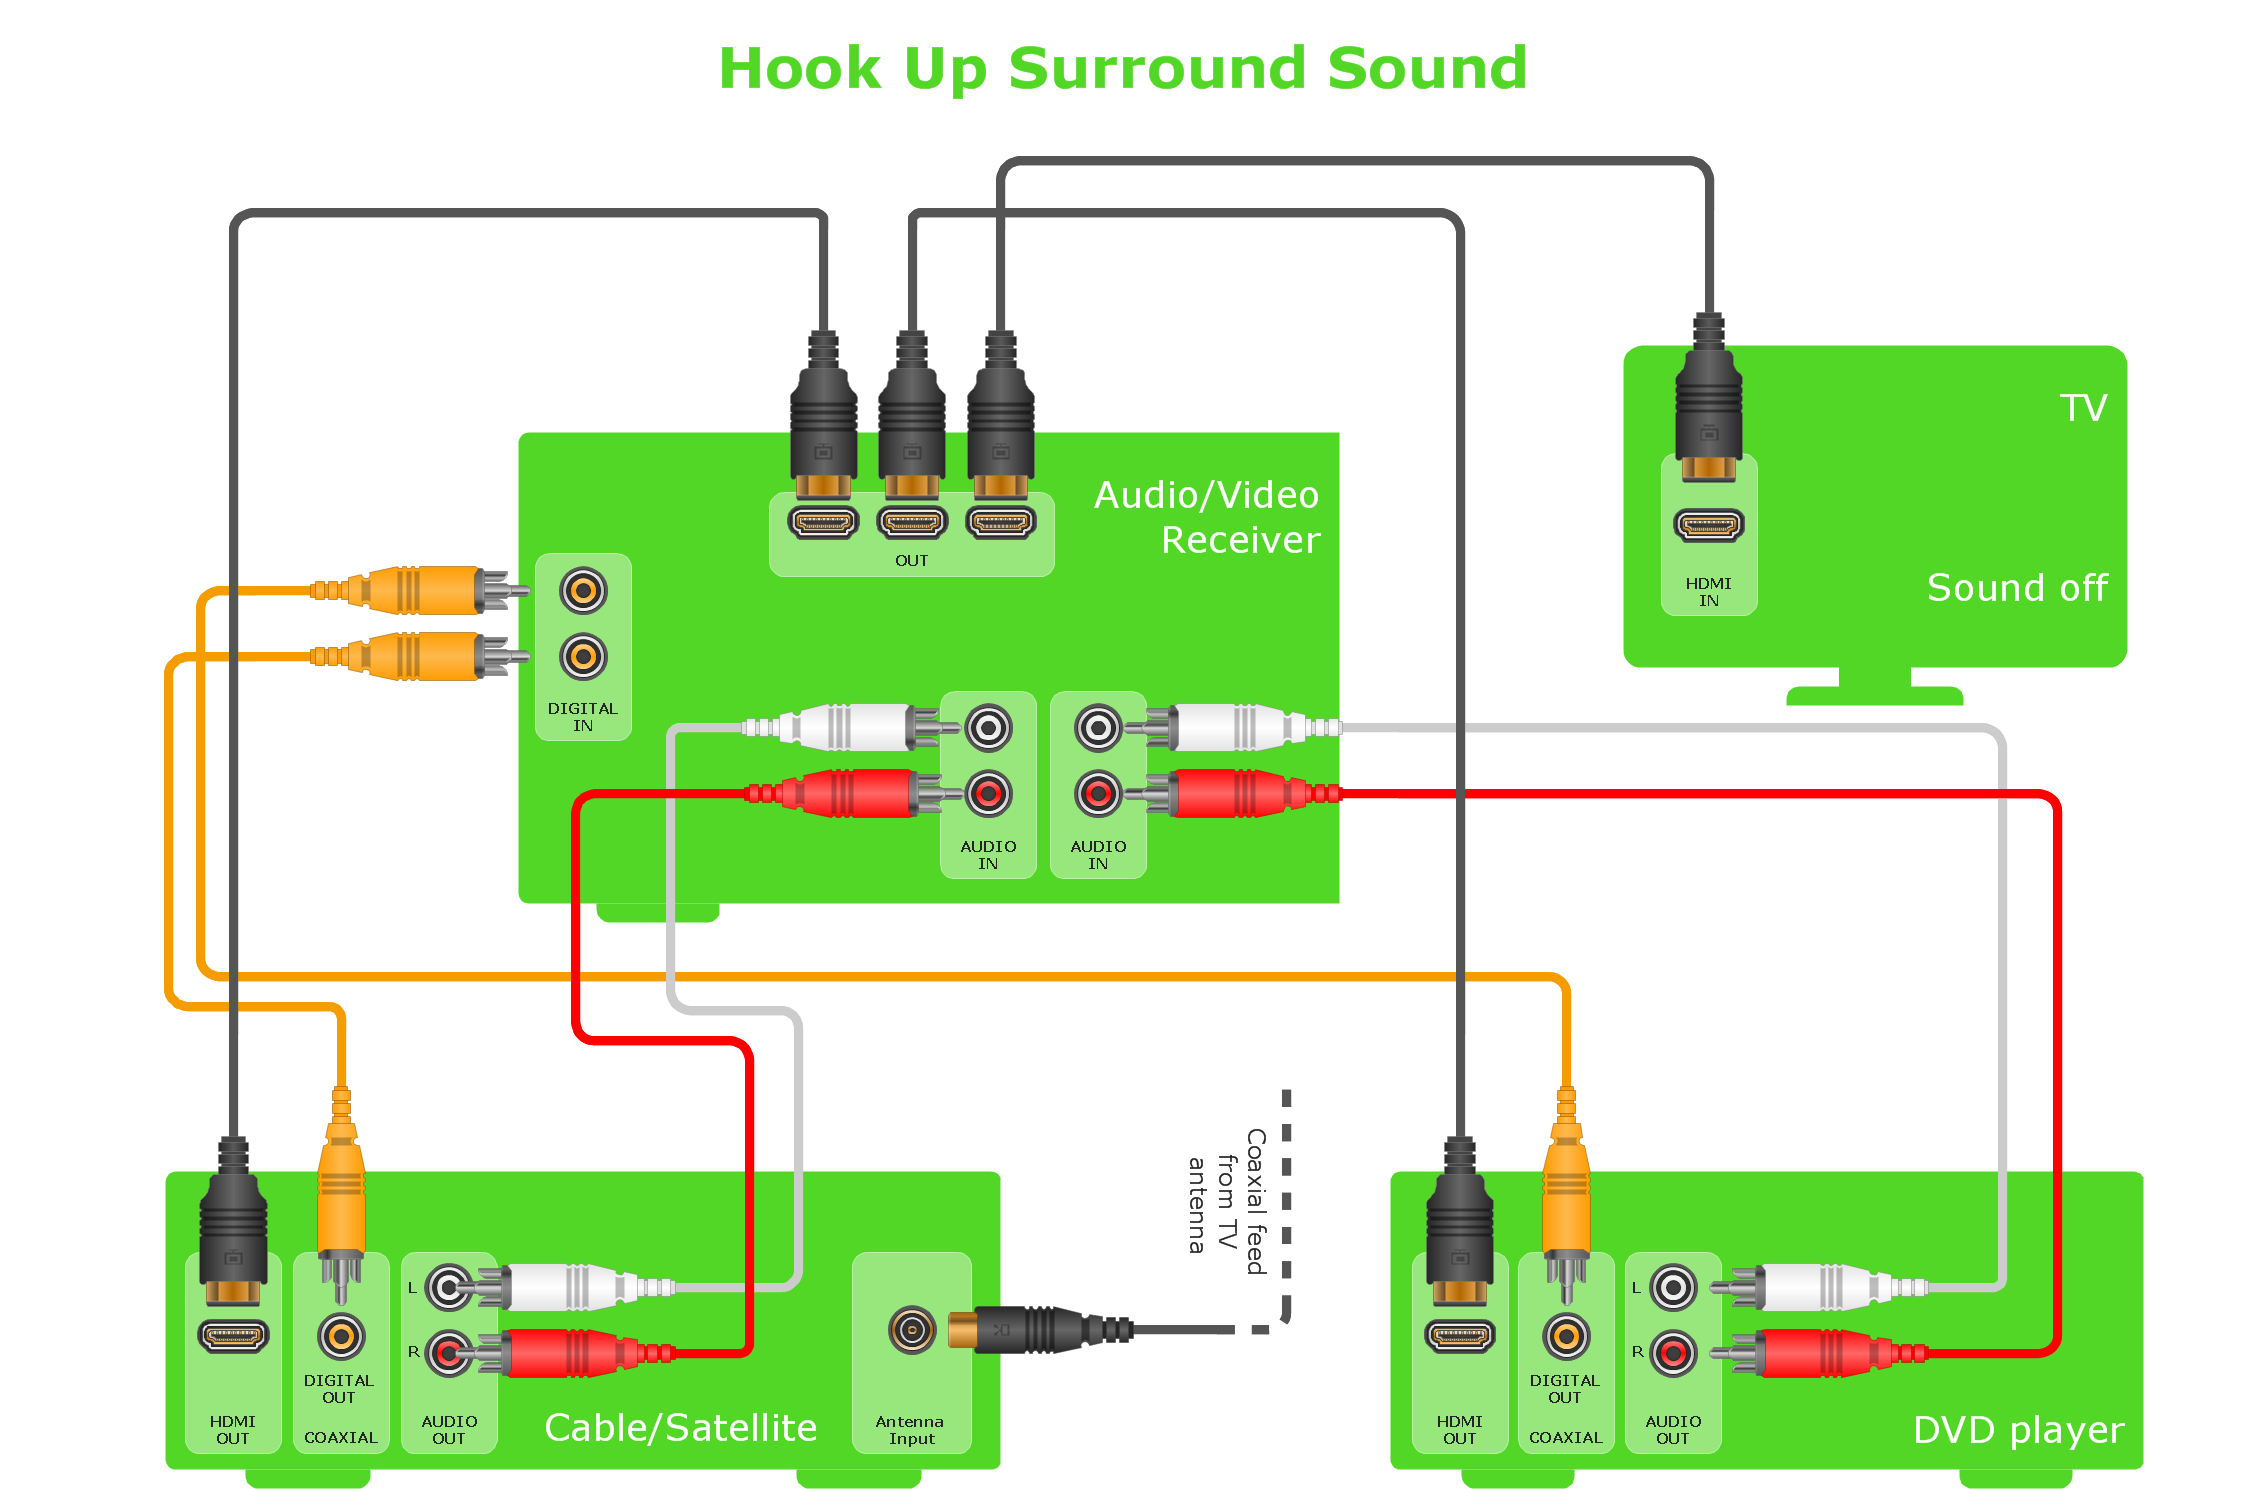 Wiring Diagram With Conceptdraw This Is A Simple Dryer That Shows Examples Of Most Hookup Home Entertainment System Surround Sound